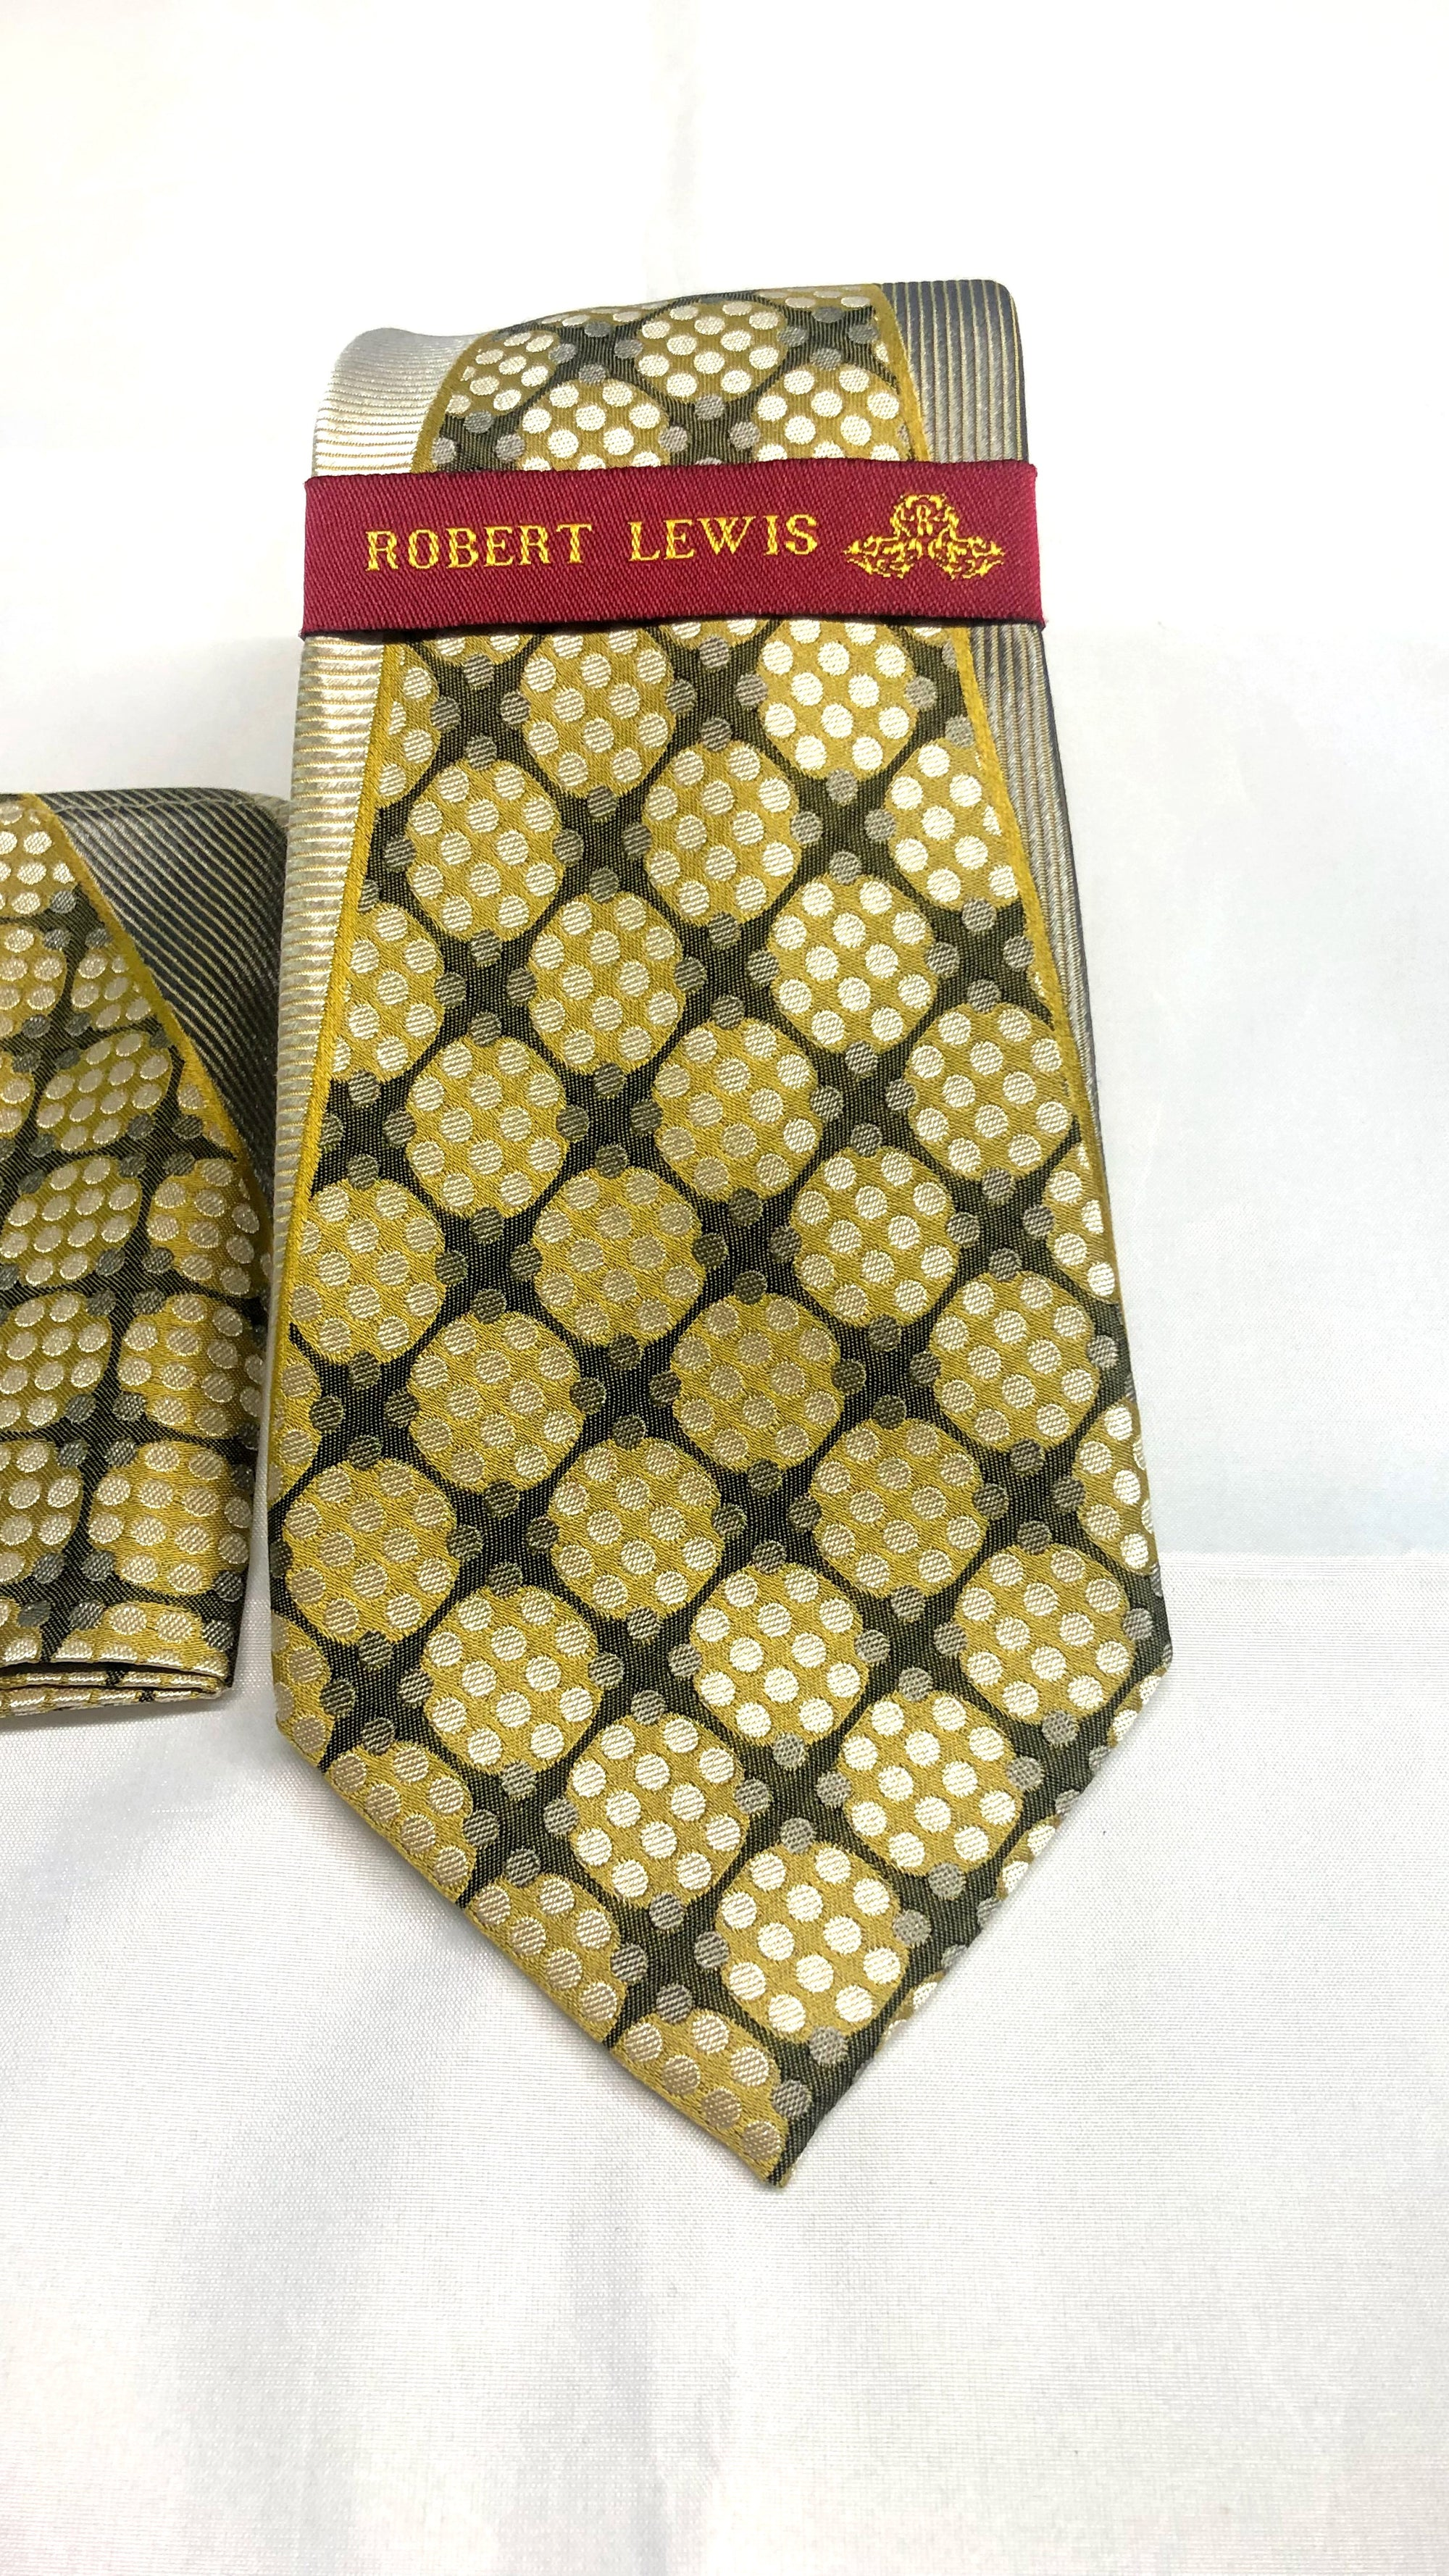 Robert Lewis Tie and Hankie Set - Gold Necktie - Dapperfam.com